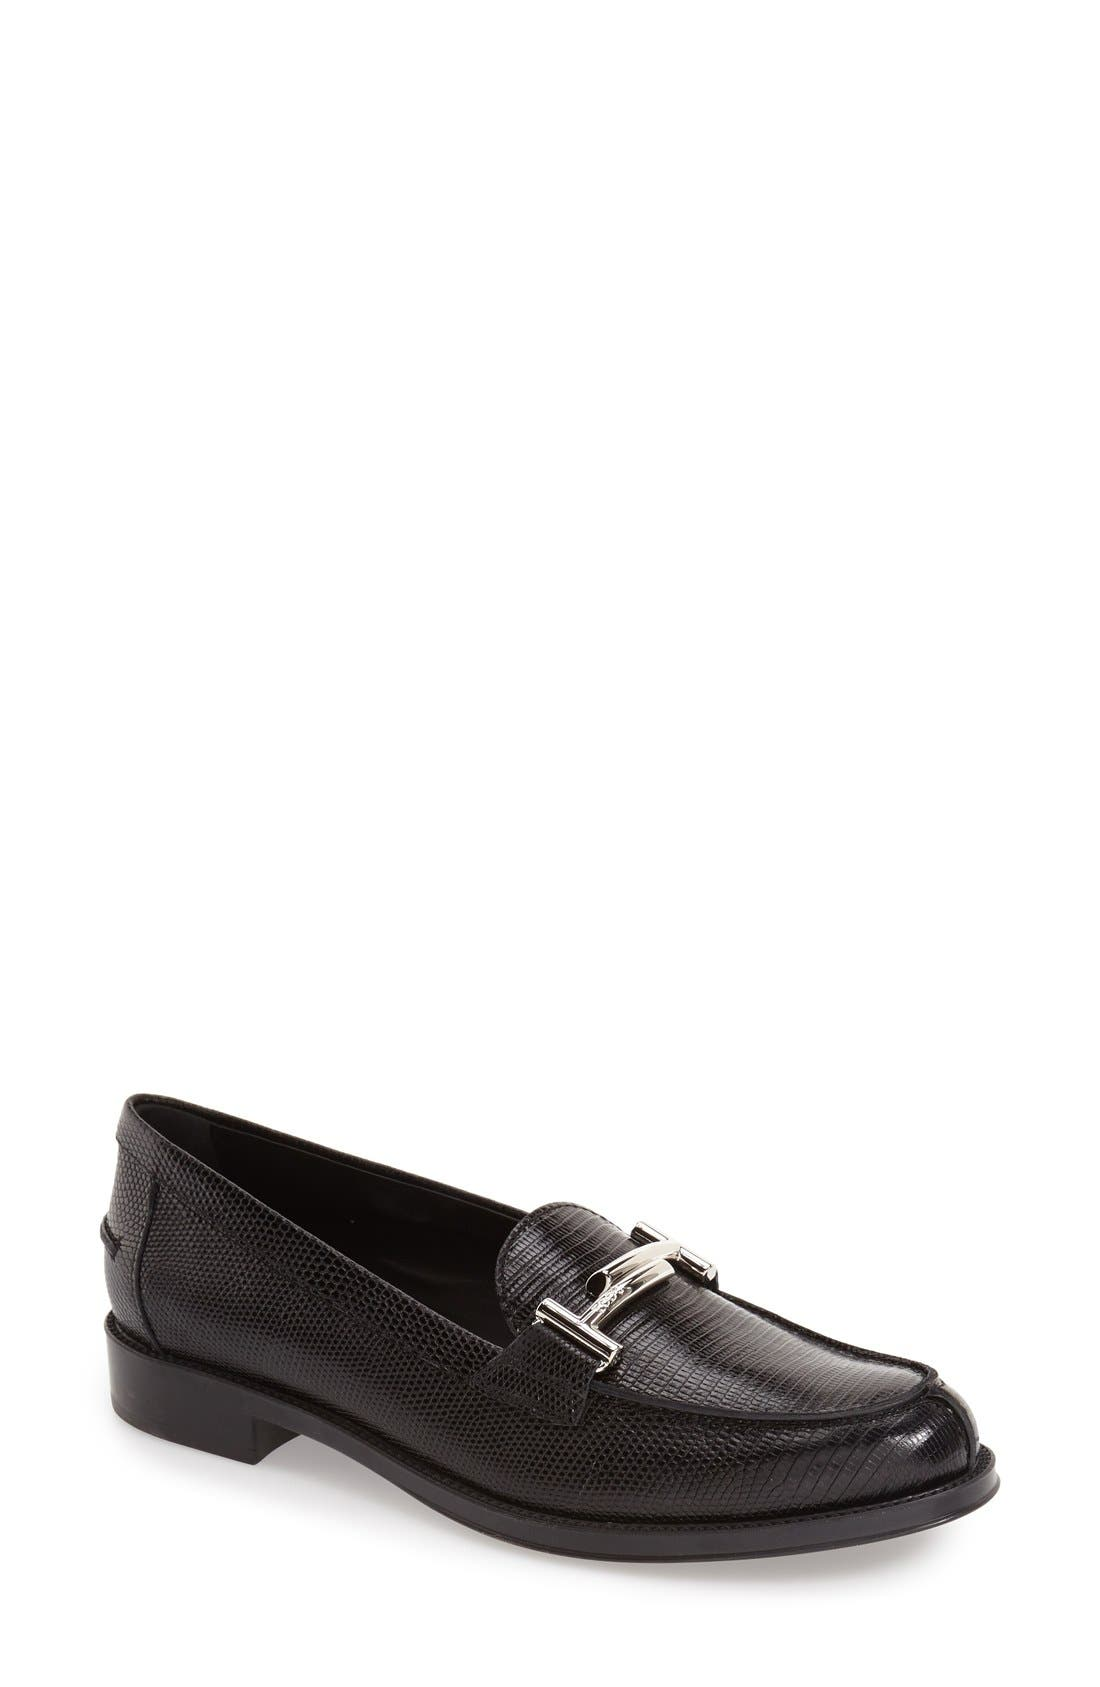 'Double T' Loafer,                             Main thumbnail 1, color,                             Black